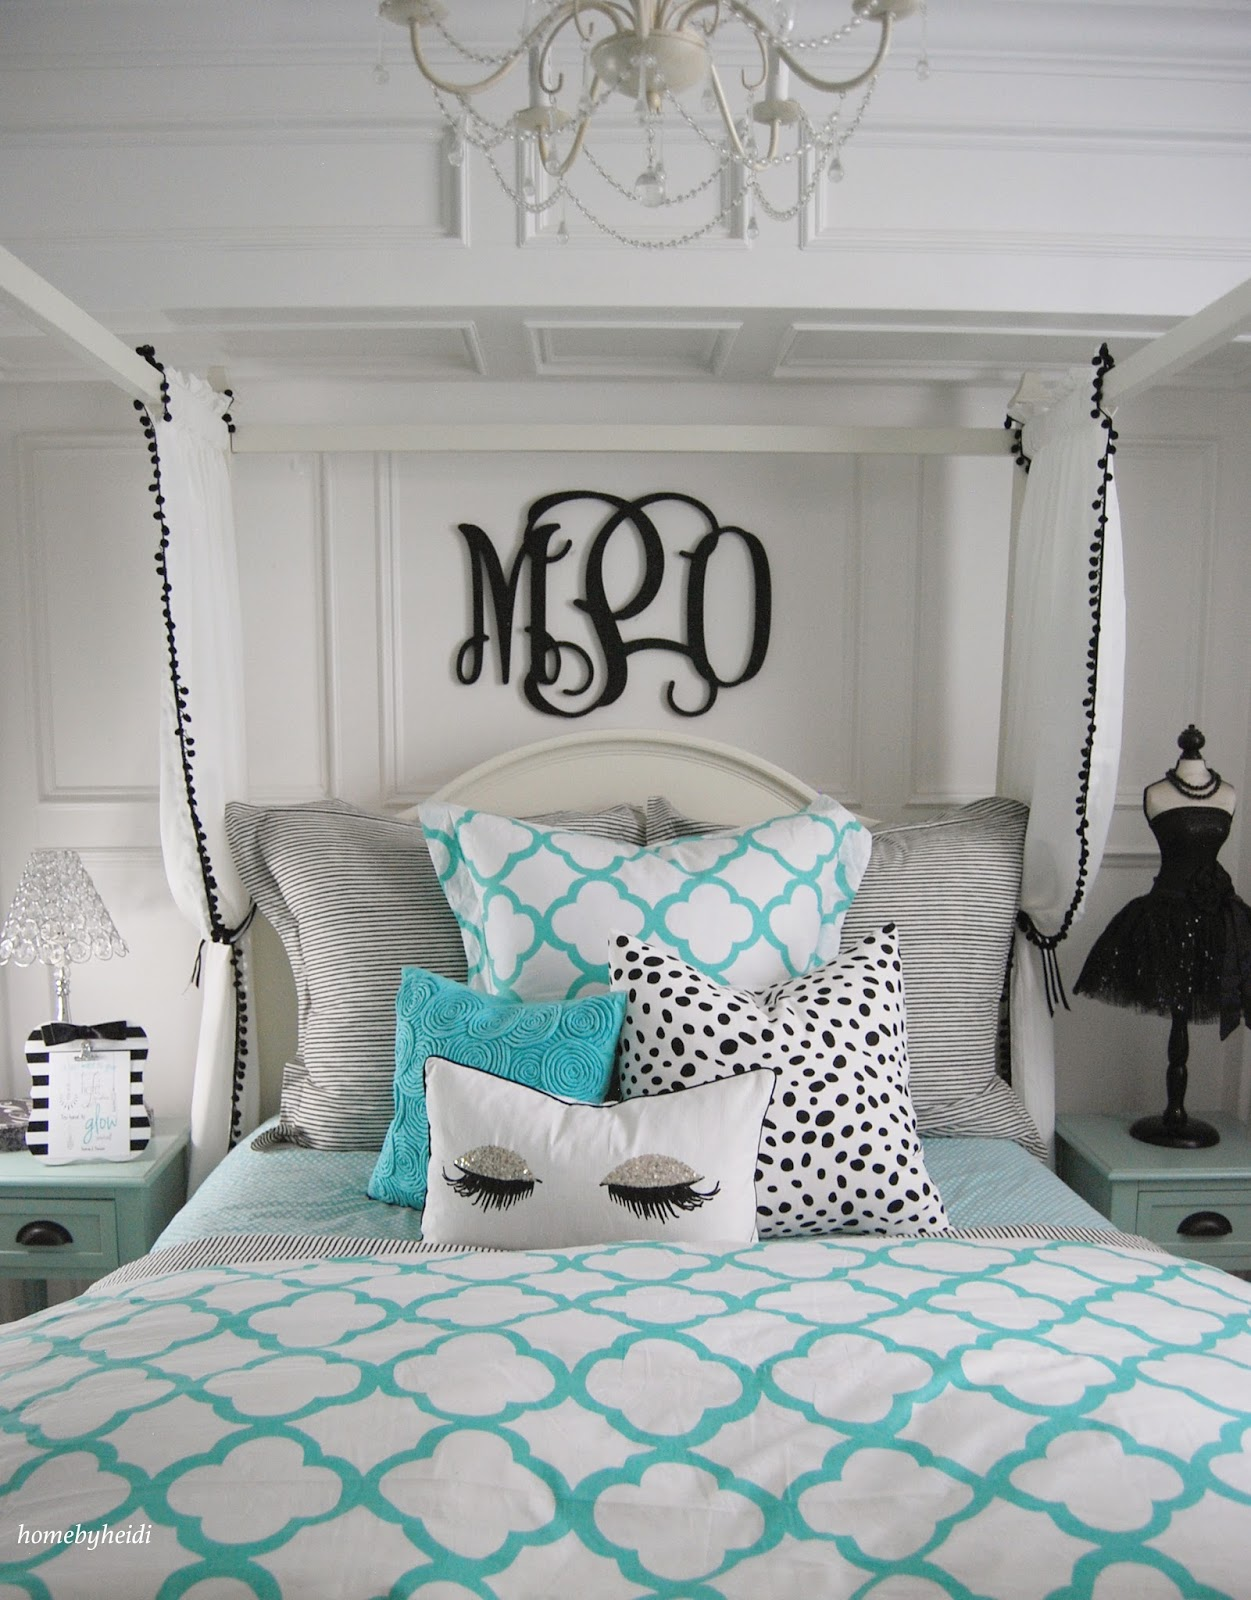 Home By Heidi Tiffany Inspired Bedroom